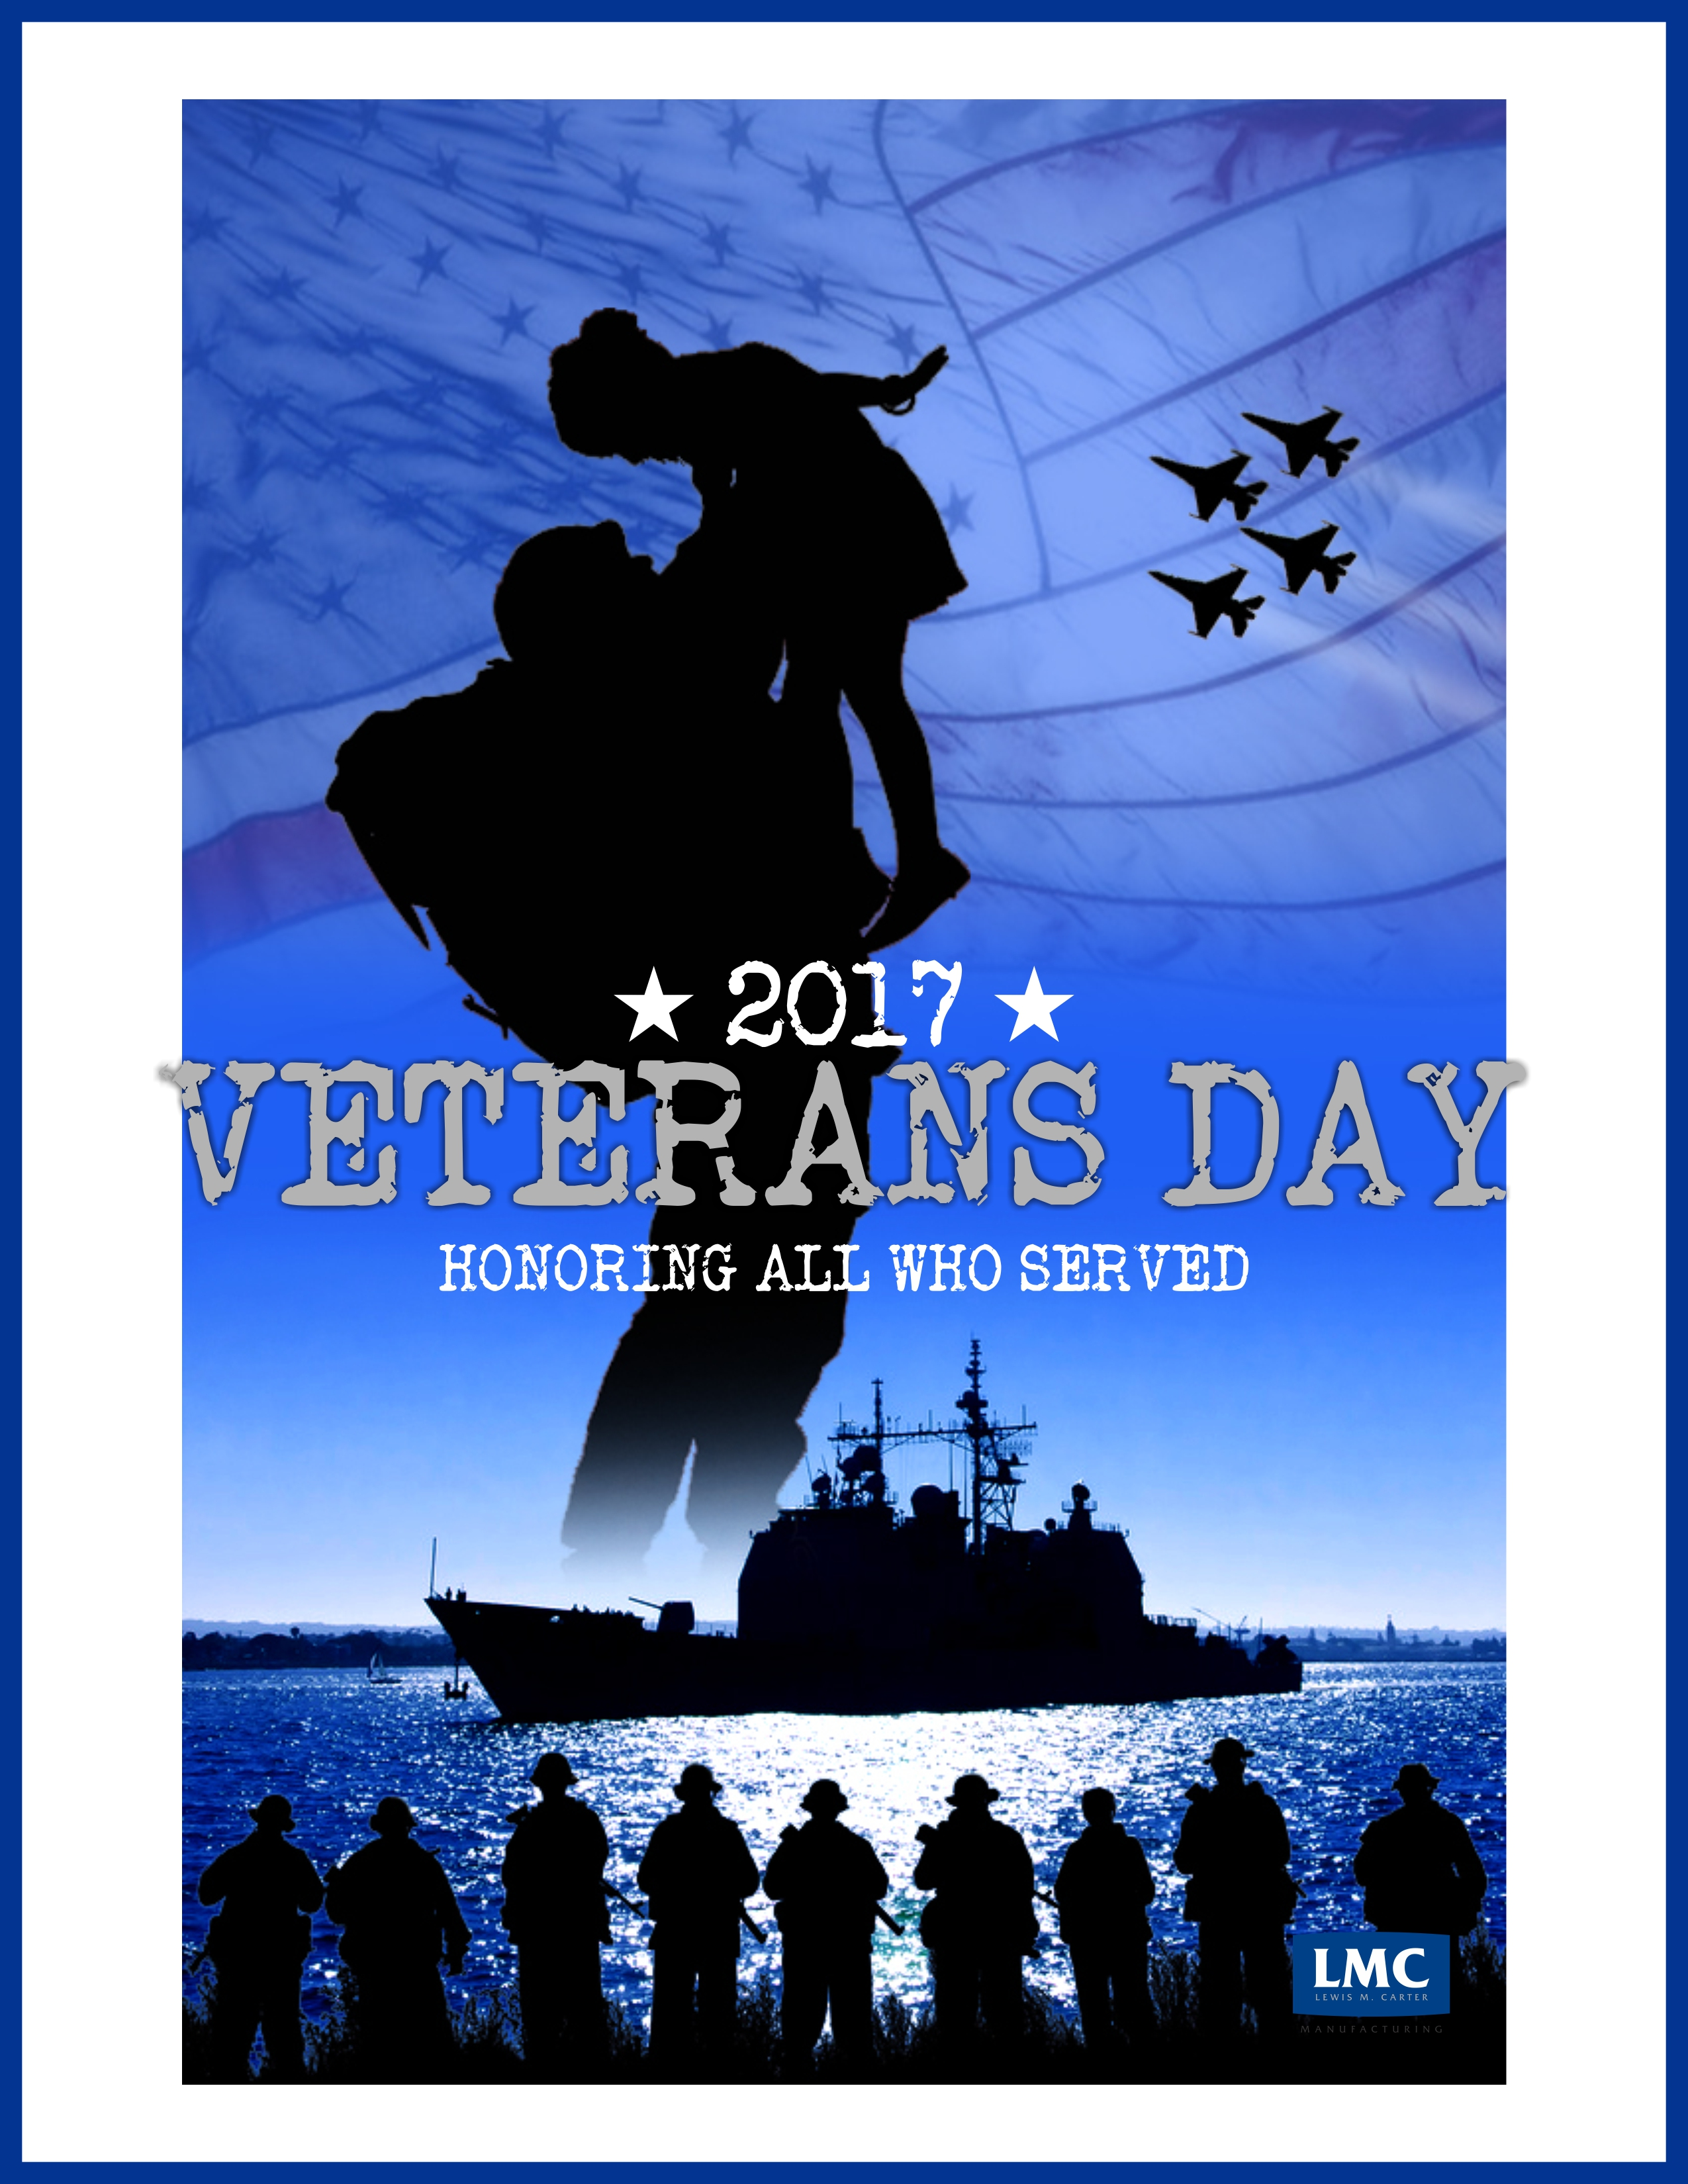 A Veterans Day Message from LMC